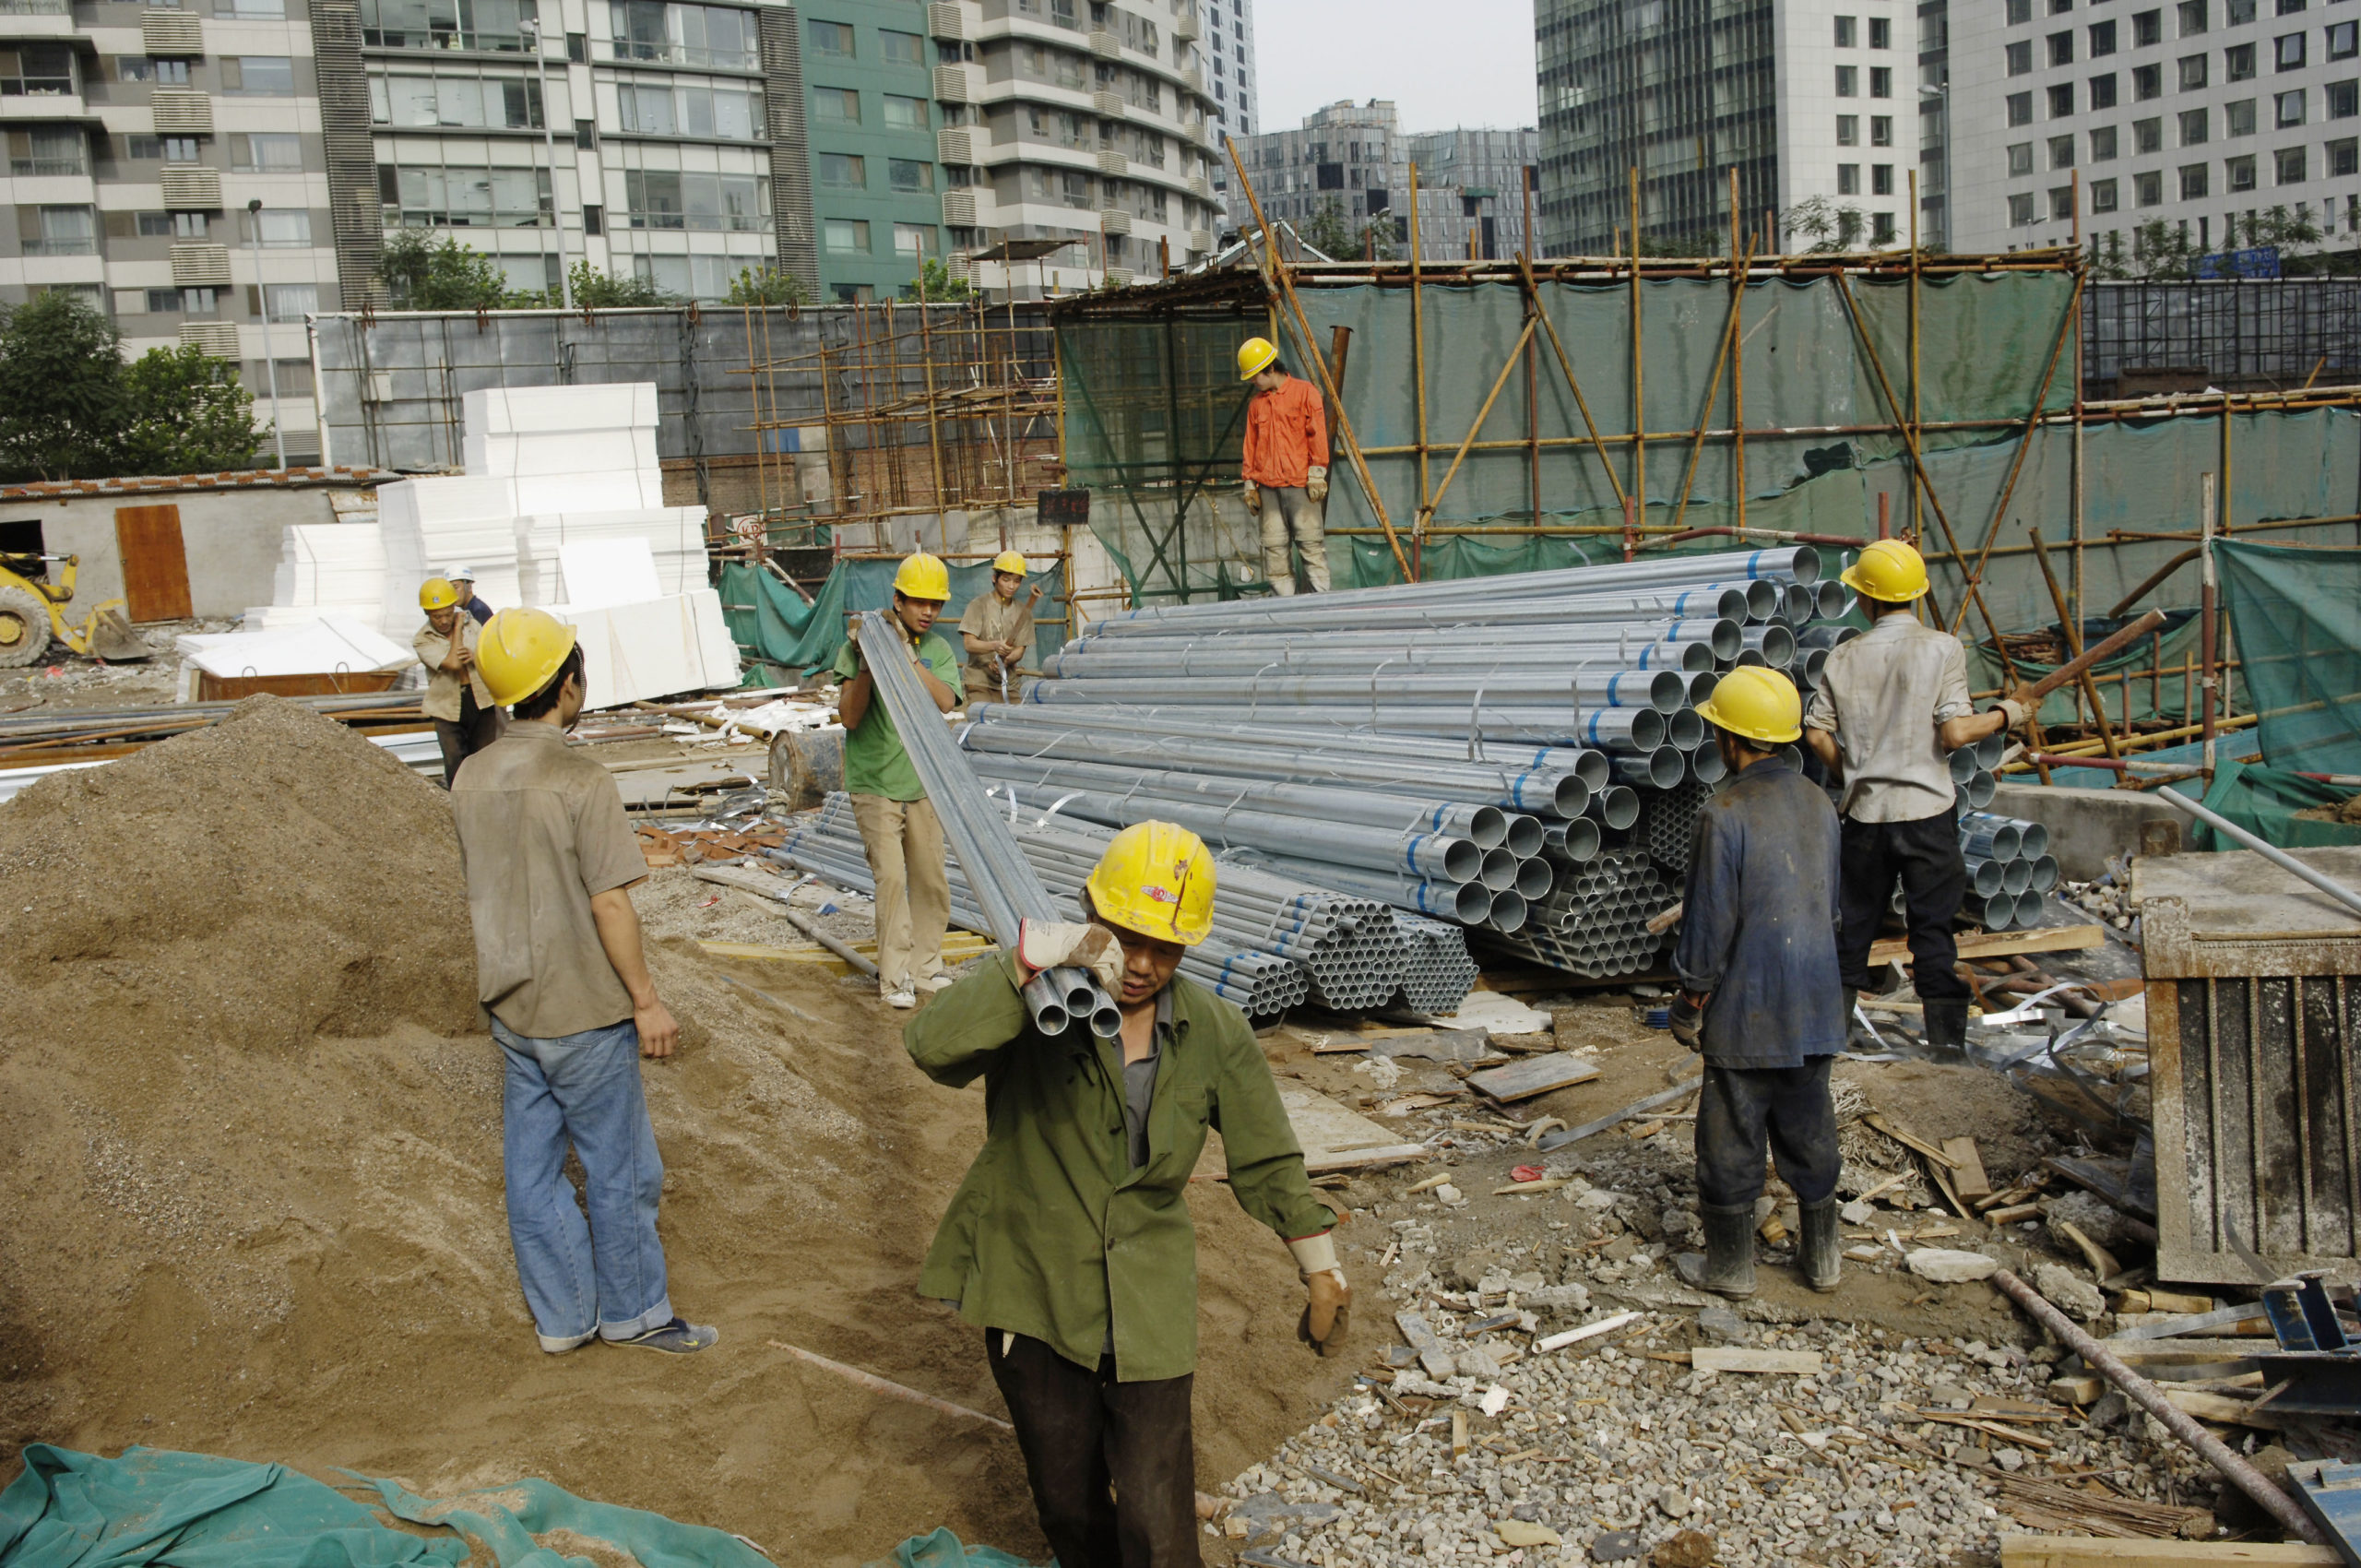 Migrant workers in Beijing construction site